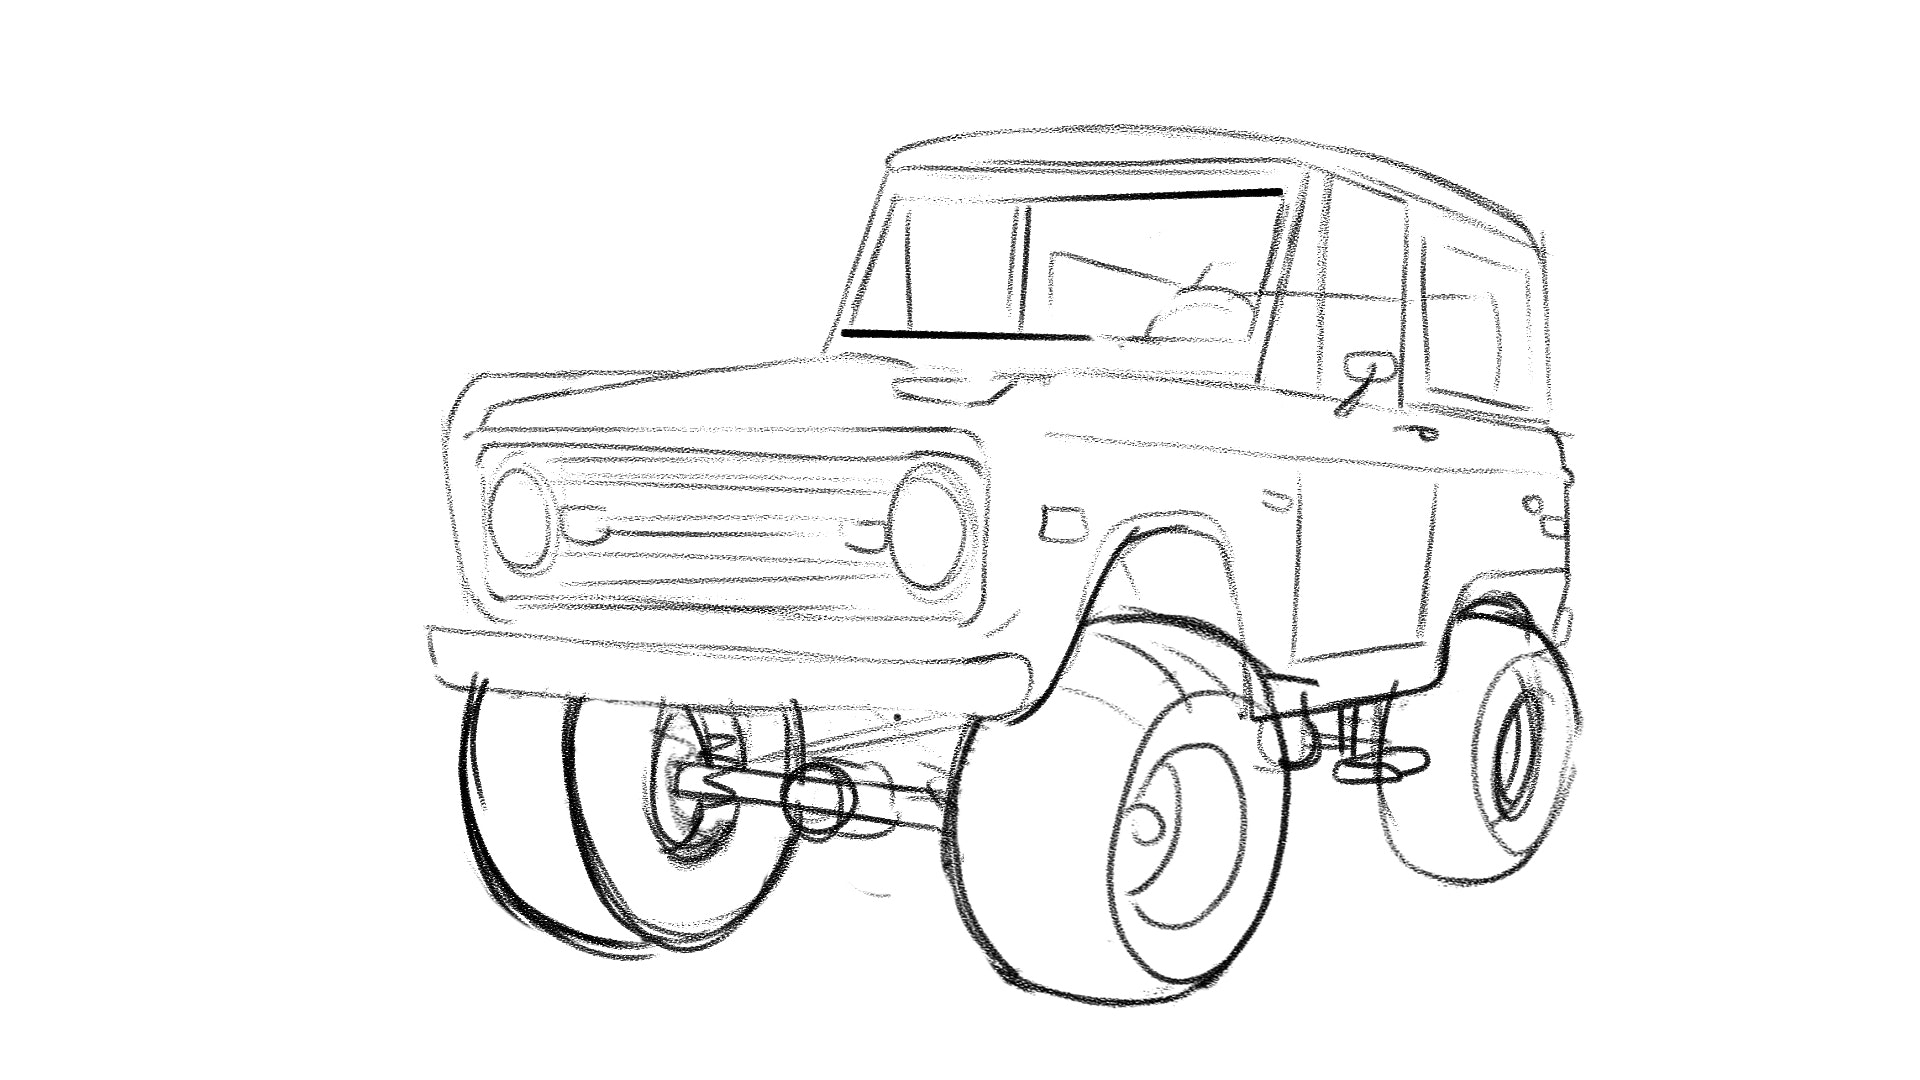 BloodBros. Illustration - 1 Bronco sketch